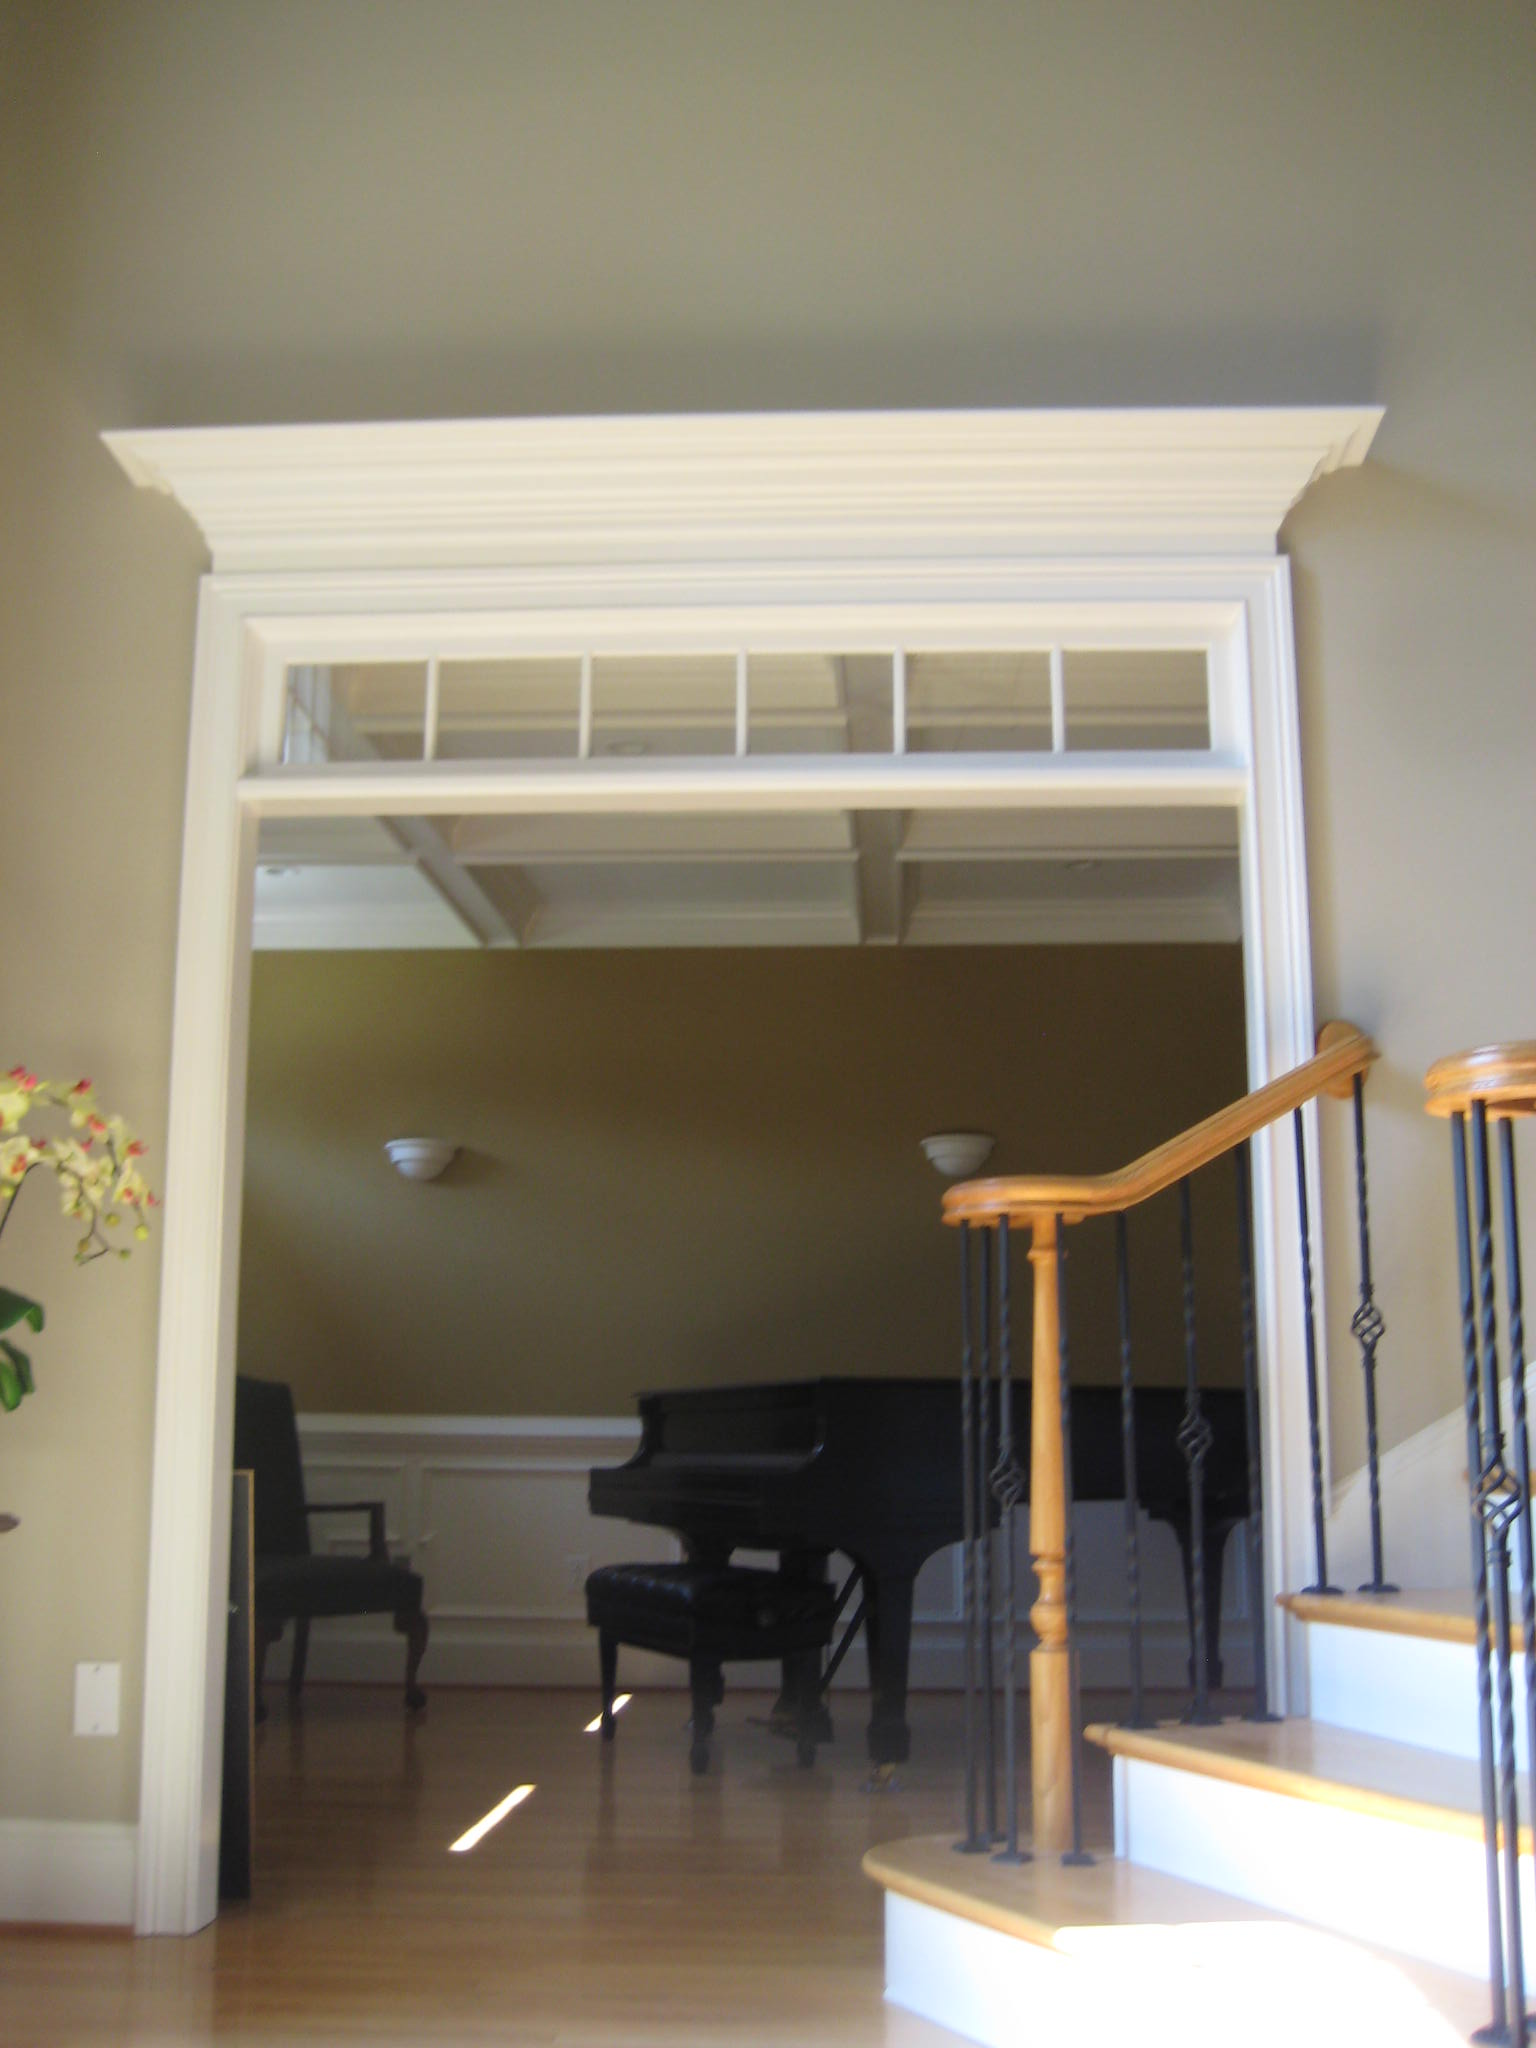 Remodeling Living Room doorway by removing doors and adding top trim molding and more.